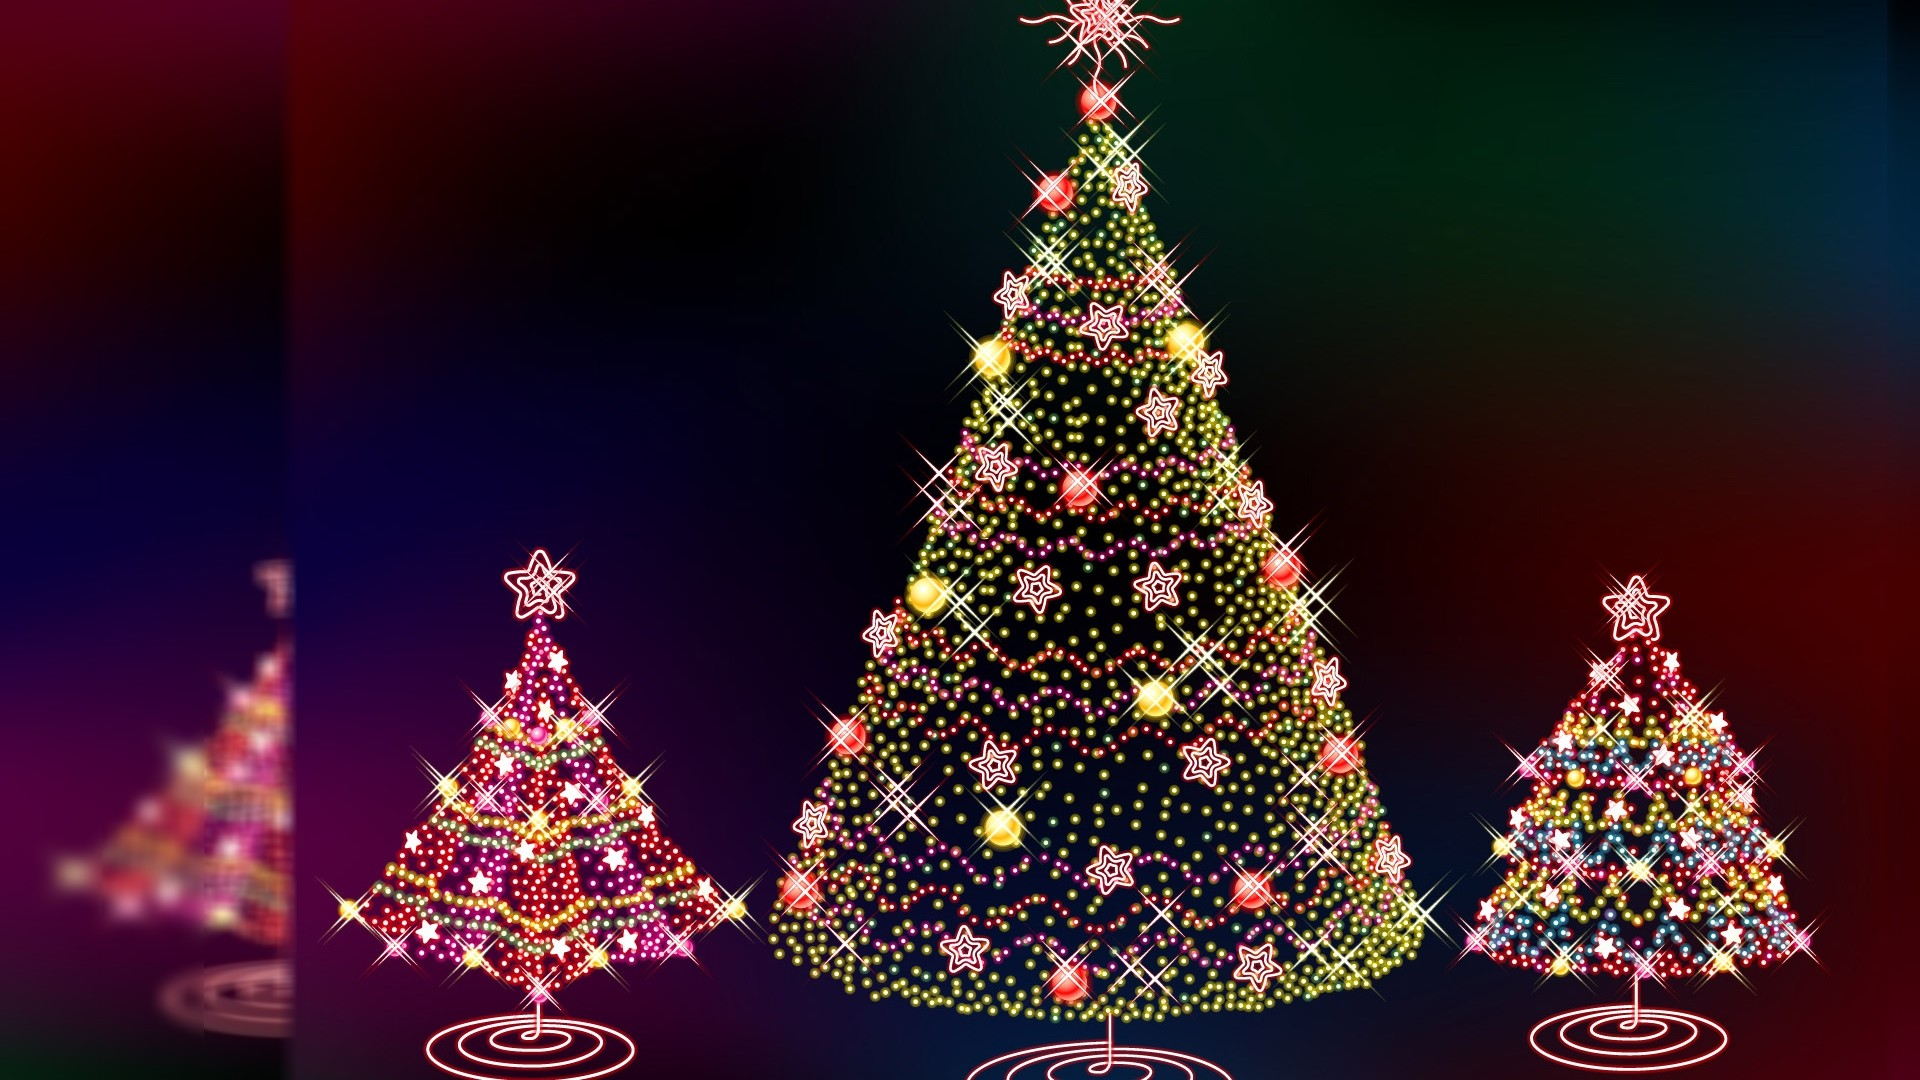 christmas desktop backgrounds (60+ images)